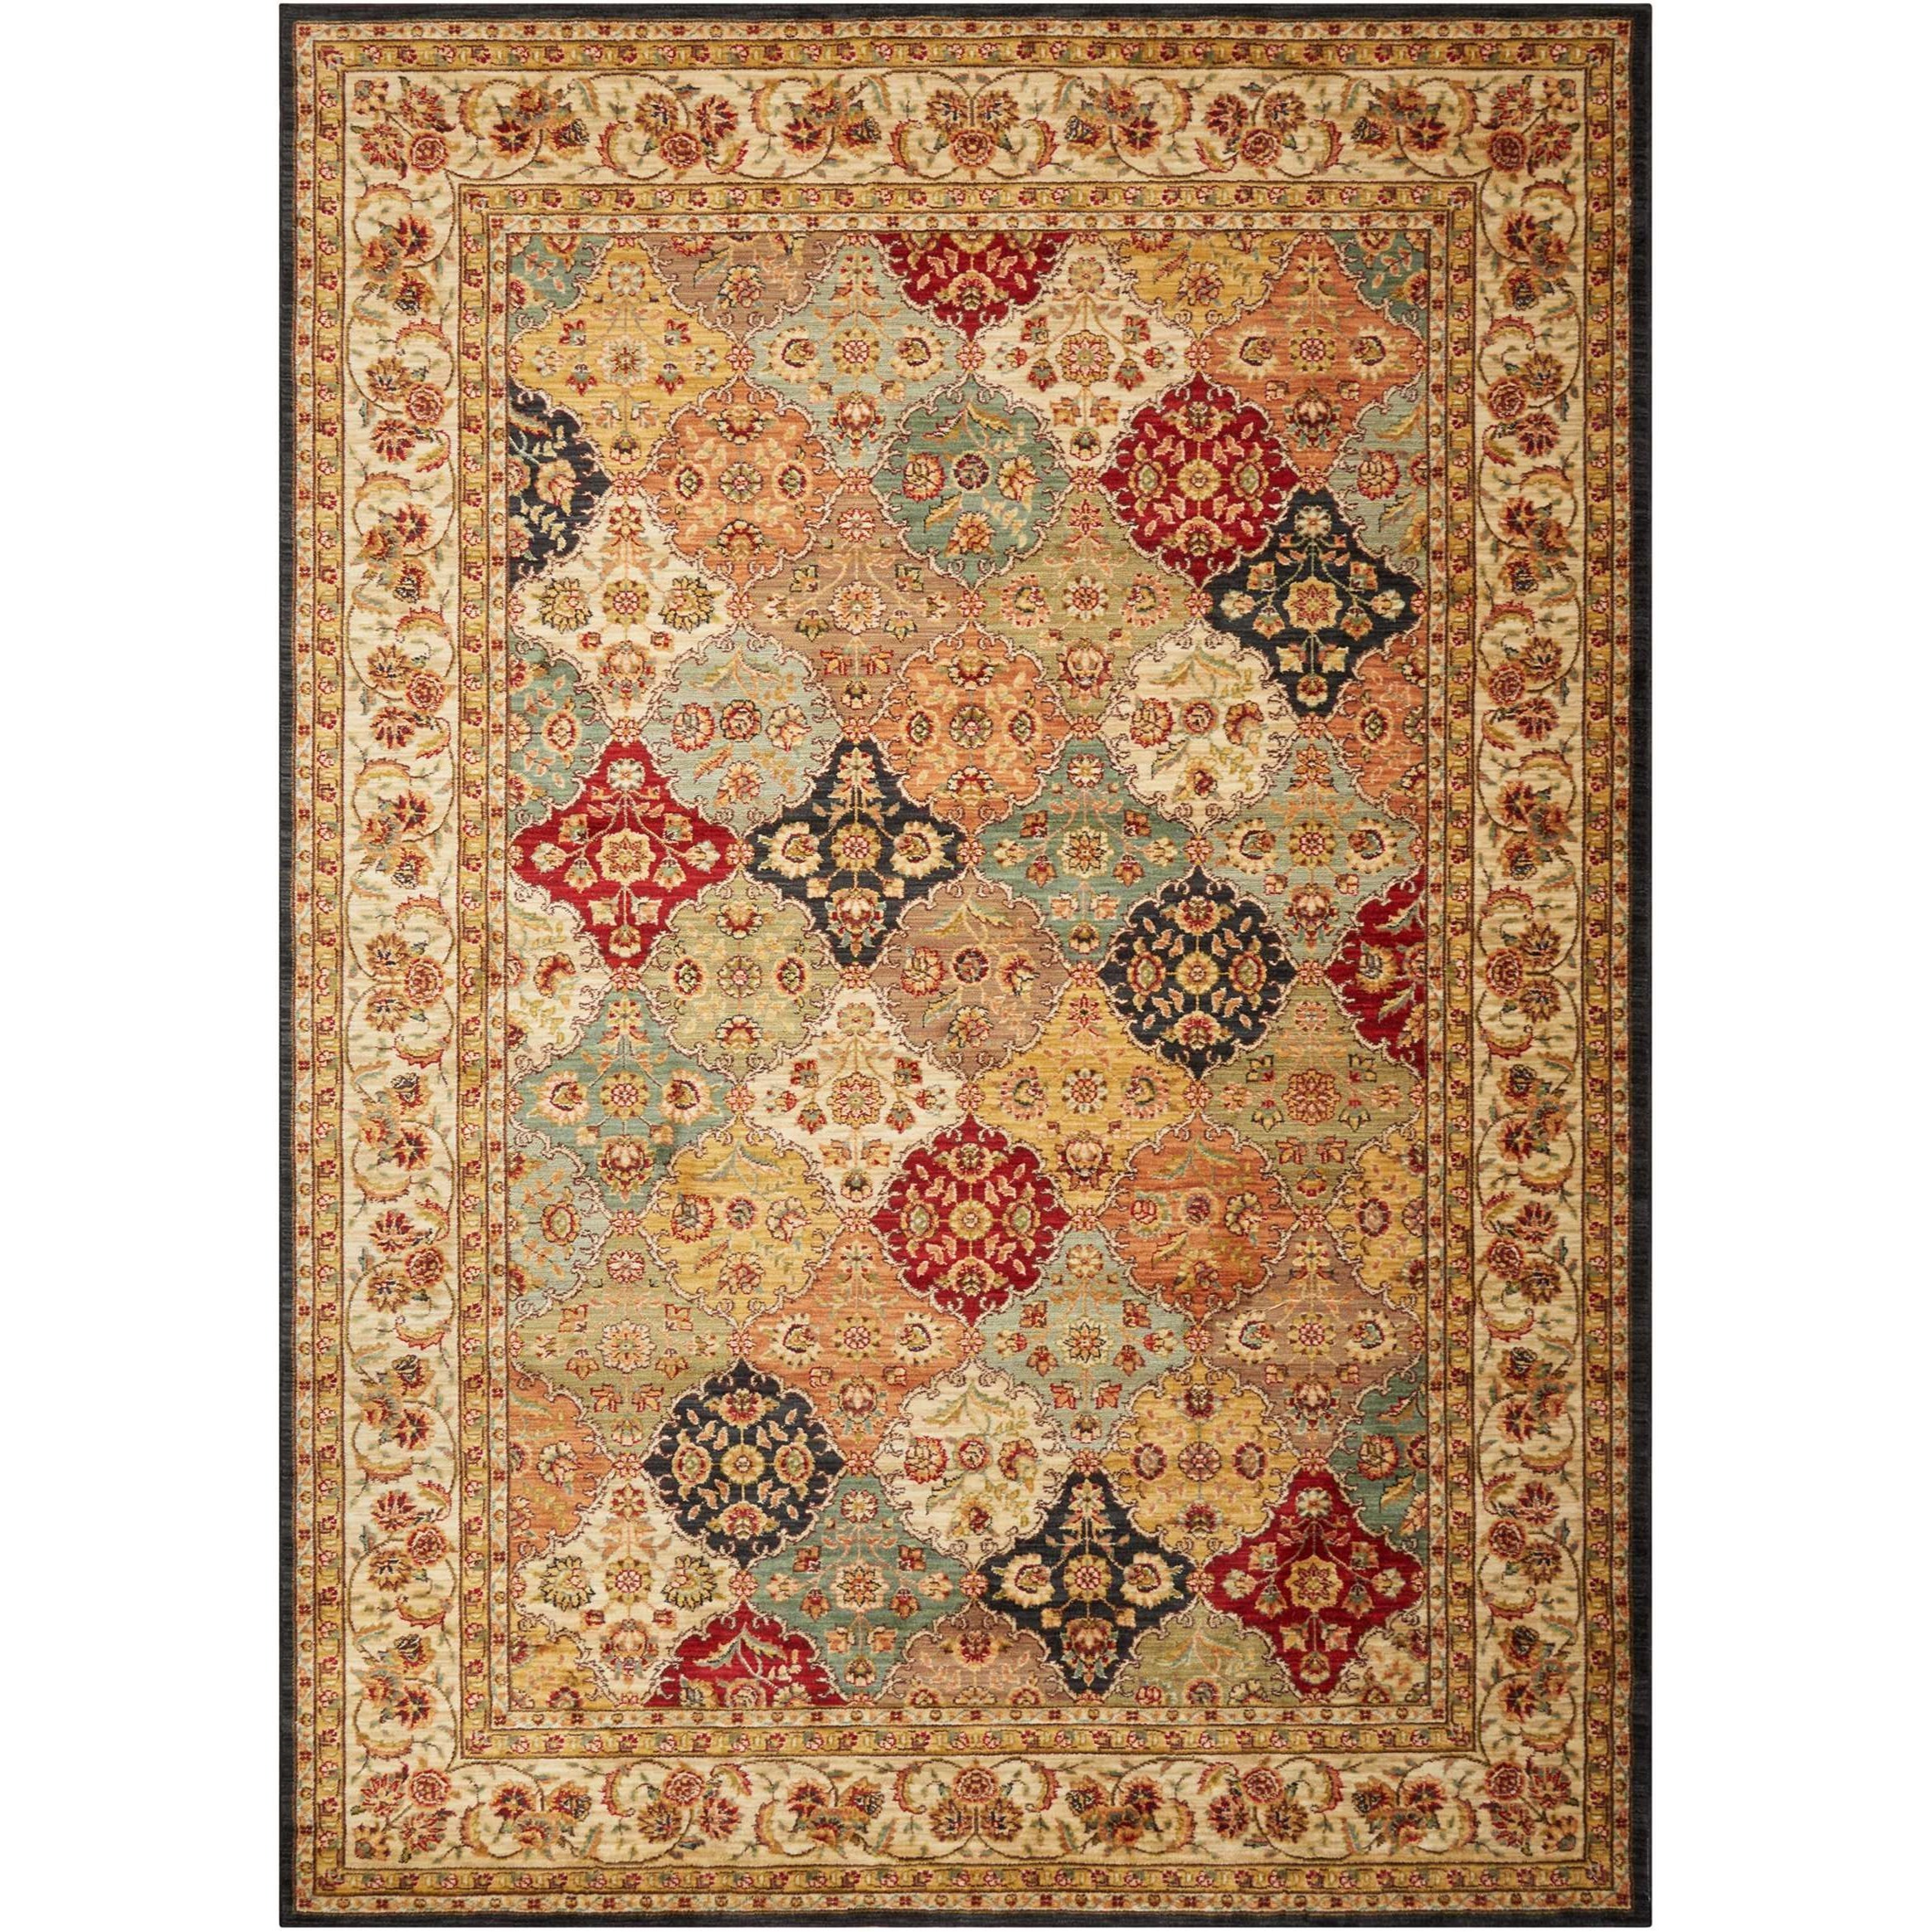 "Ancient Times 7'9"" x 10'10"" Rug by kathy ireland Home by Nourison at Home Collections Furniture"